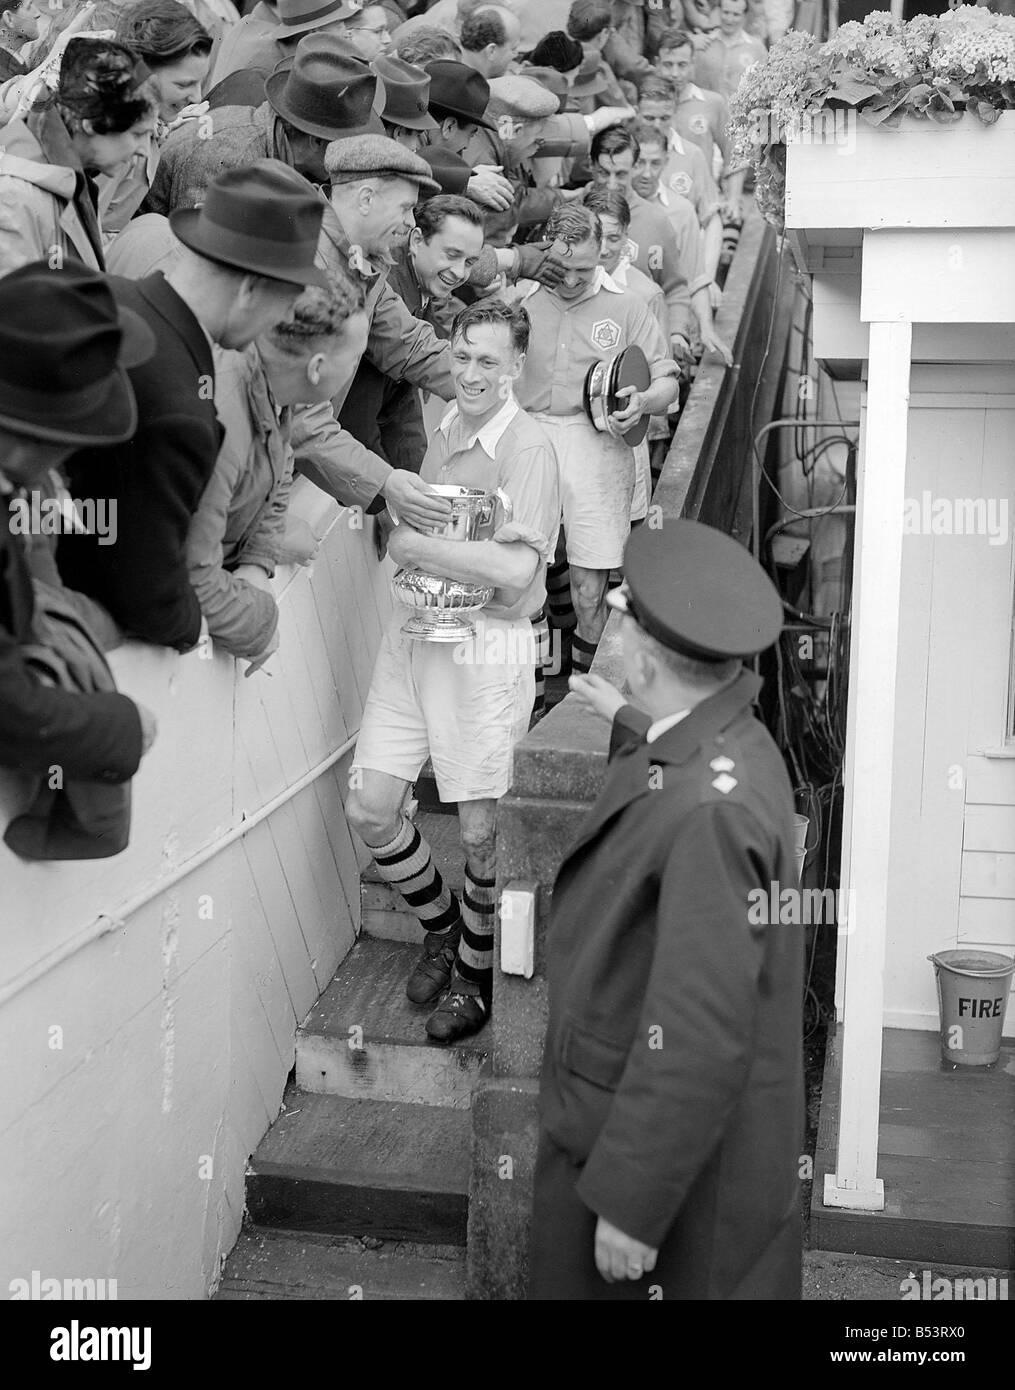 Joe Mercer walks down from the Royal Box at Wembley after collecting the FA Cup for Arsenal DM 023836 12 Stock Photo